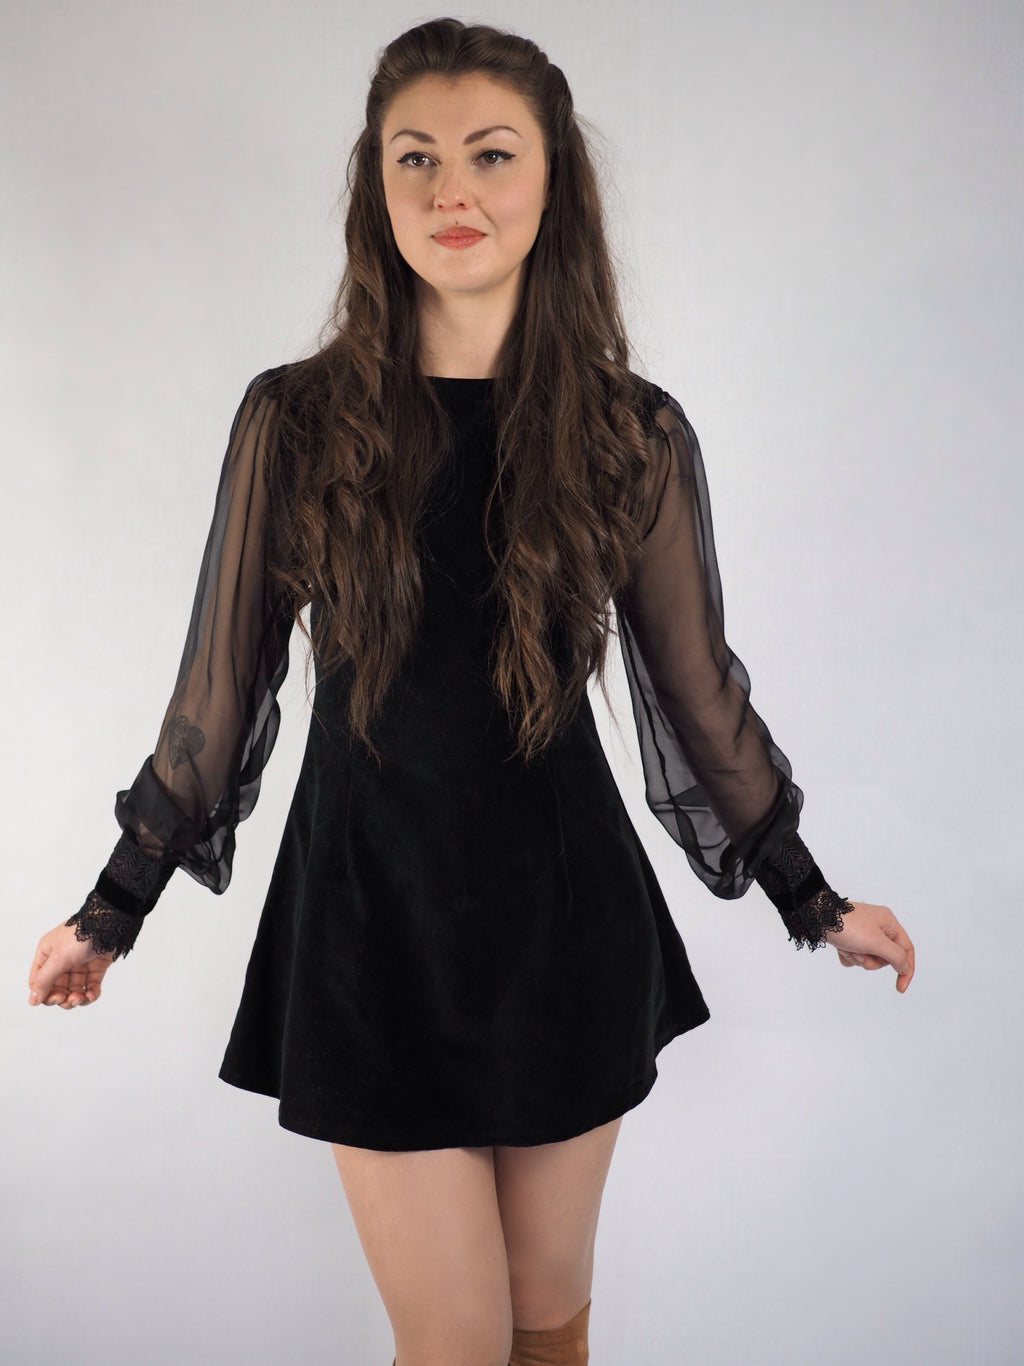 Black Velvet and Chiffon Dress - Violet House